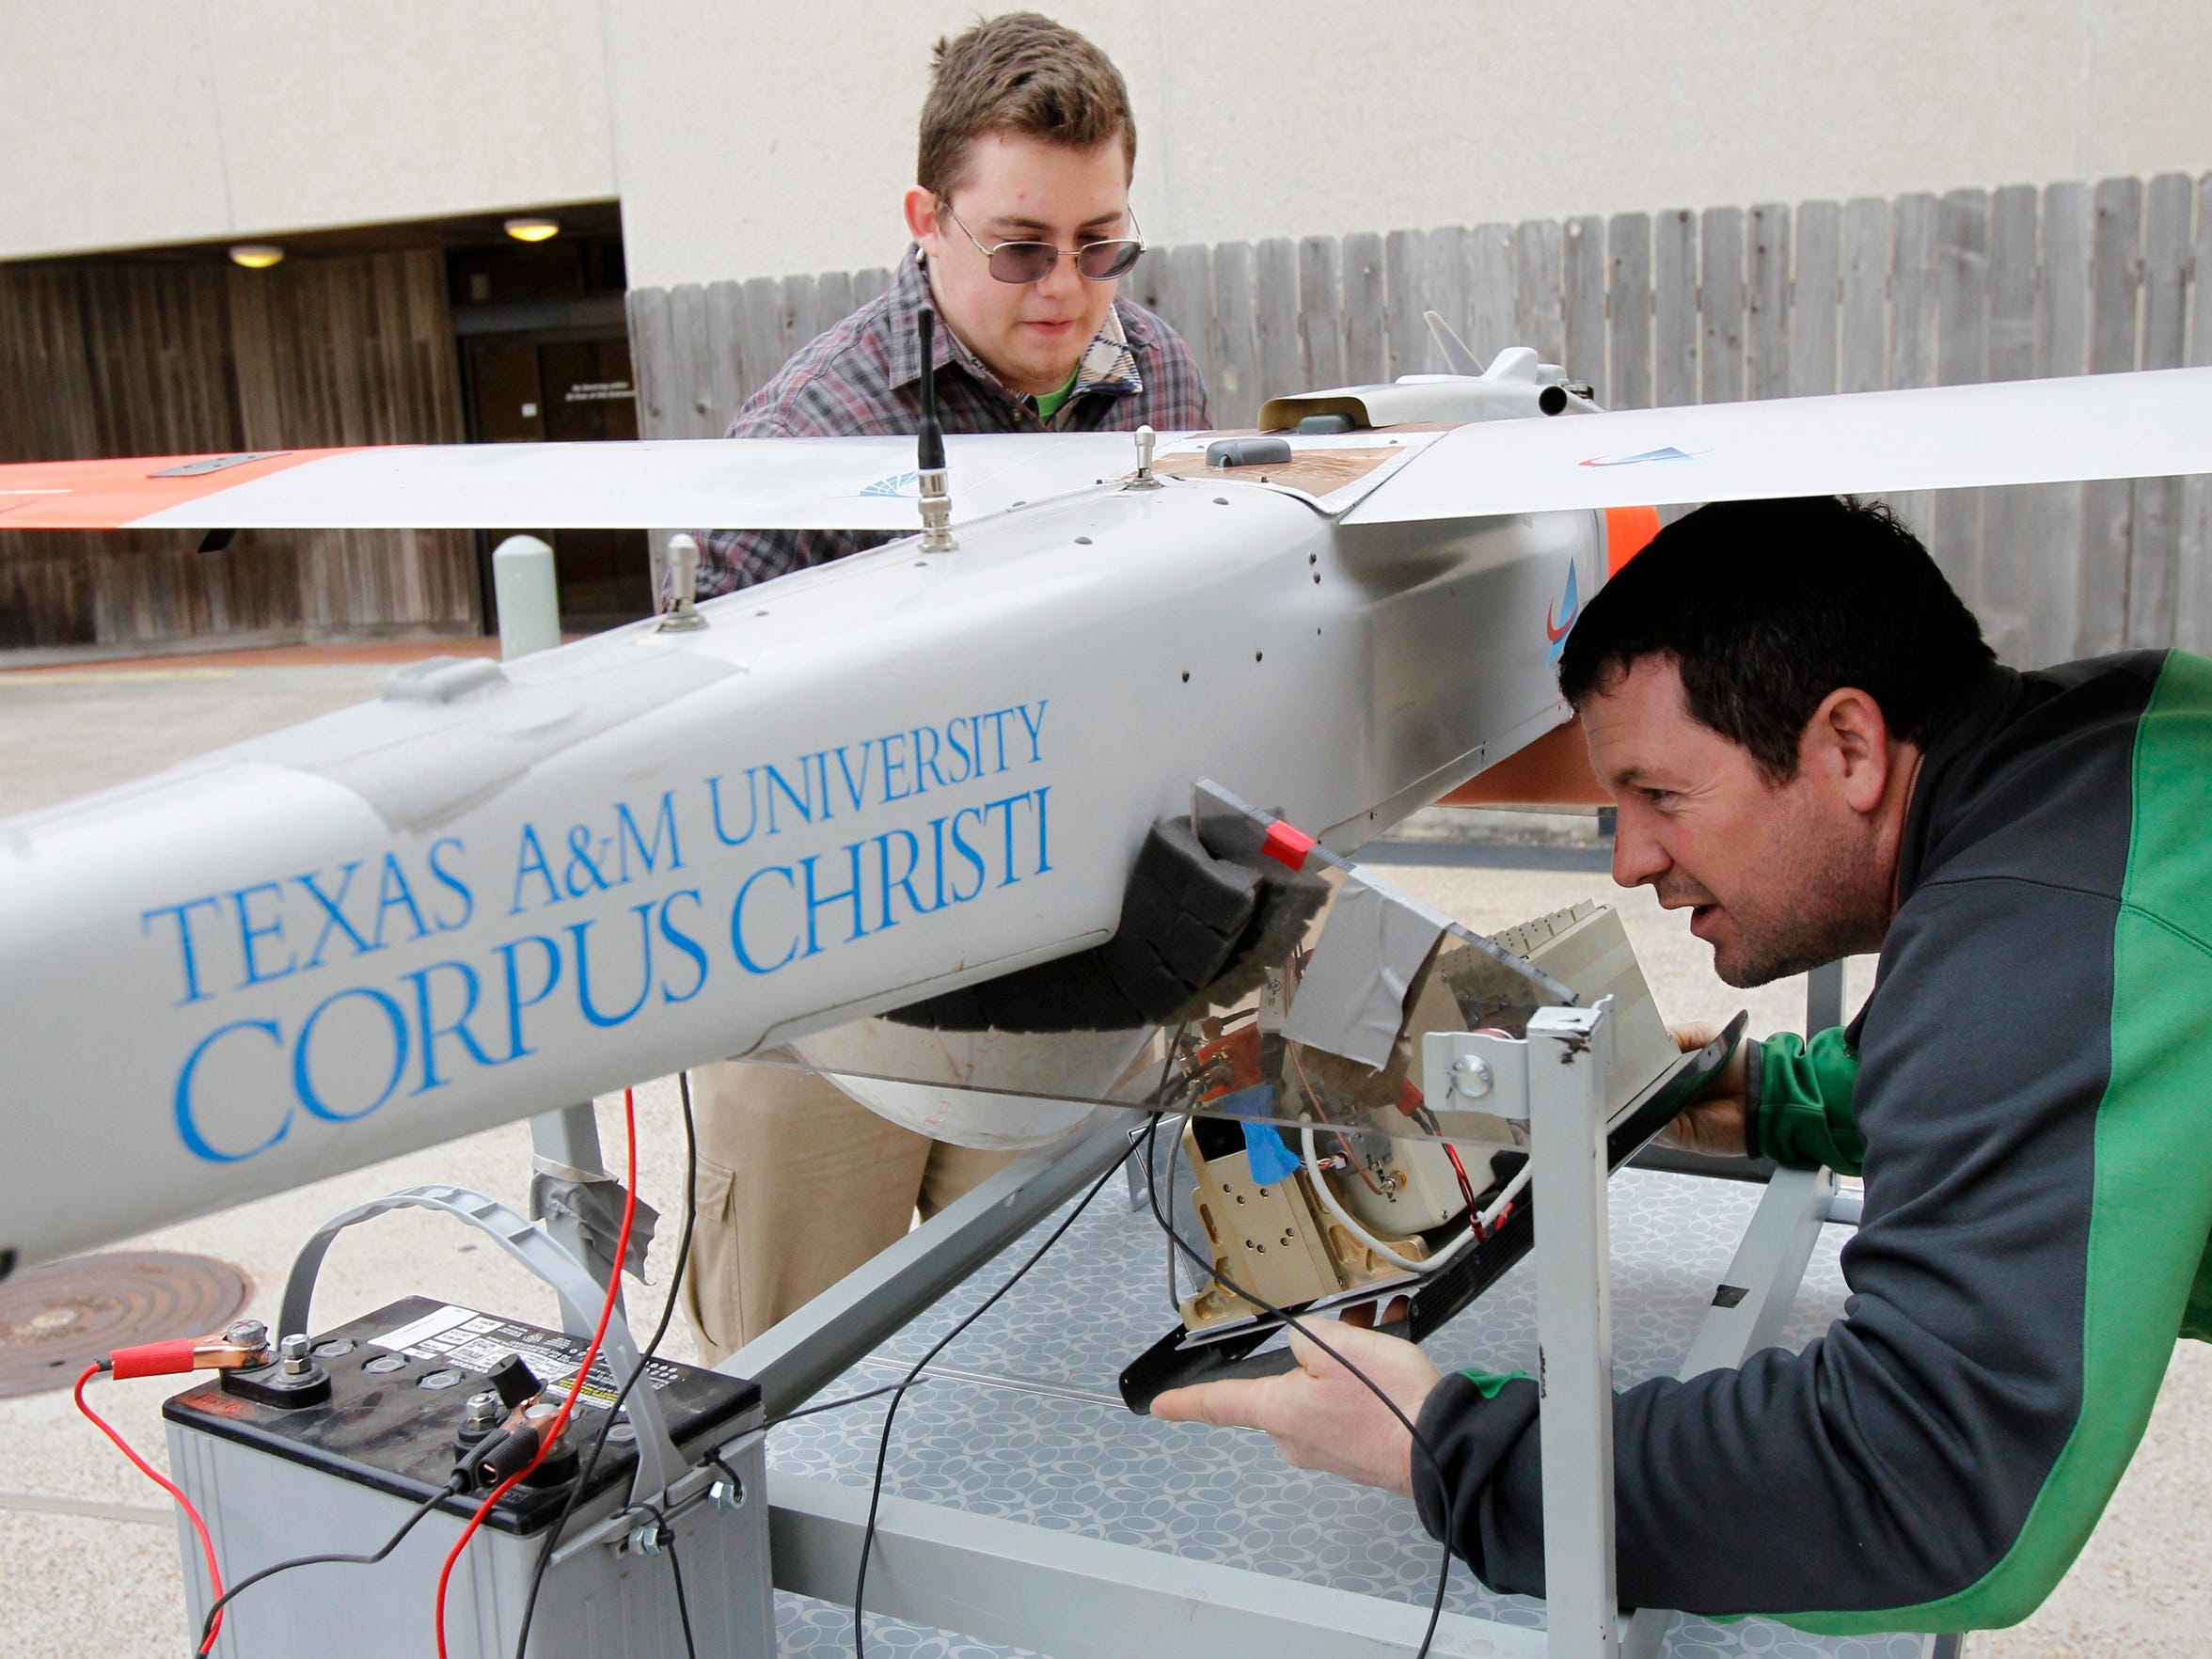 Freshman Martin Hass of Austin (left) looks on as Anthony Di Stefano, field application engineer for American Aerospace, pulls out the cameras and on-board computer on Dec. 11, 2013 as they try to configure the unmanned aerial vehicle at Texas A&M University-Corpus Christi.